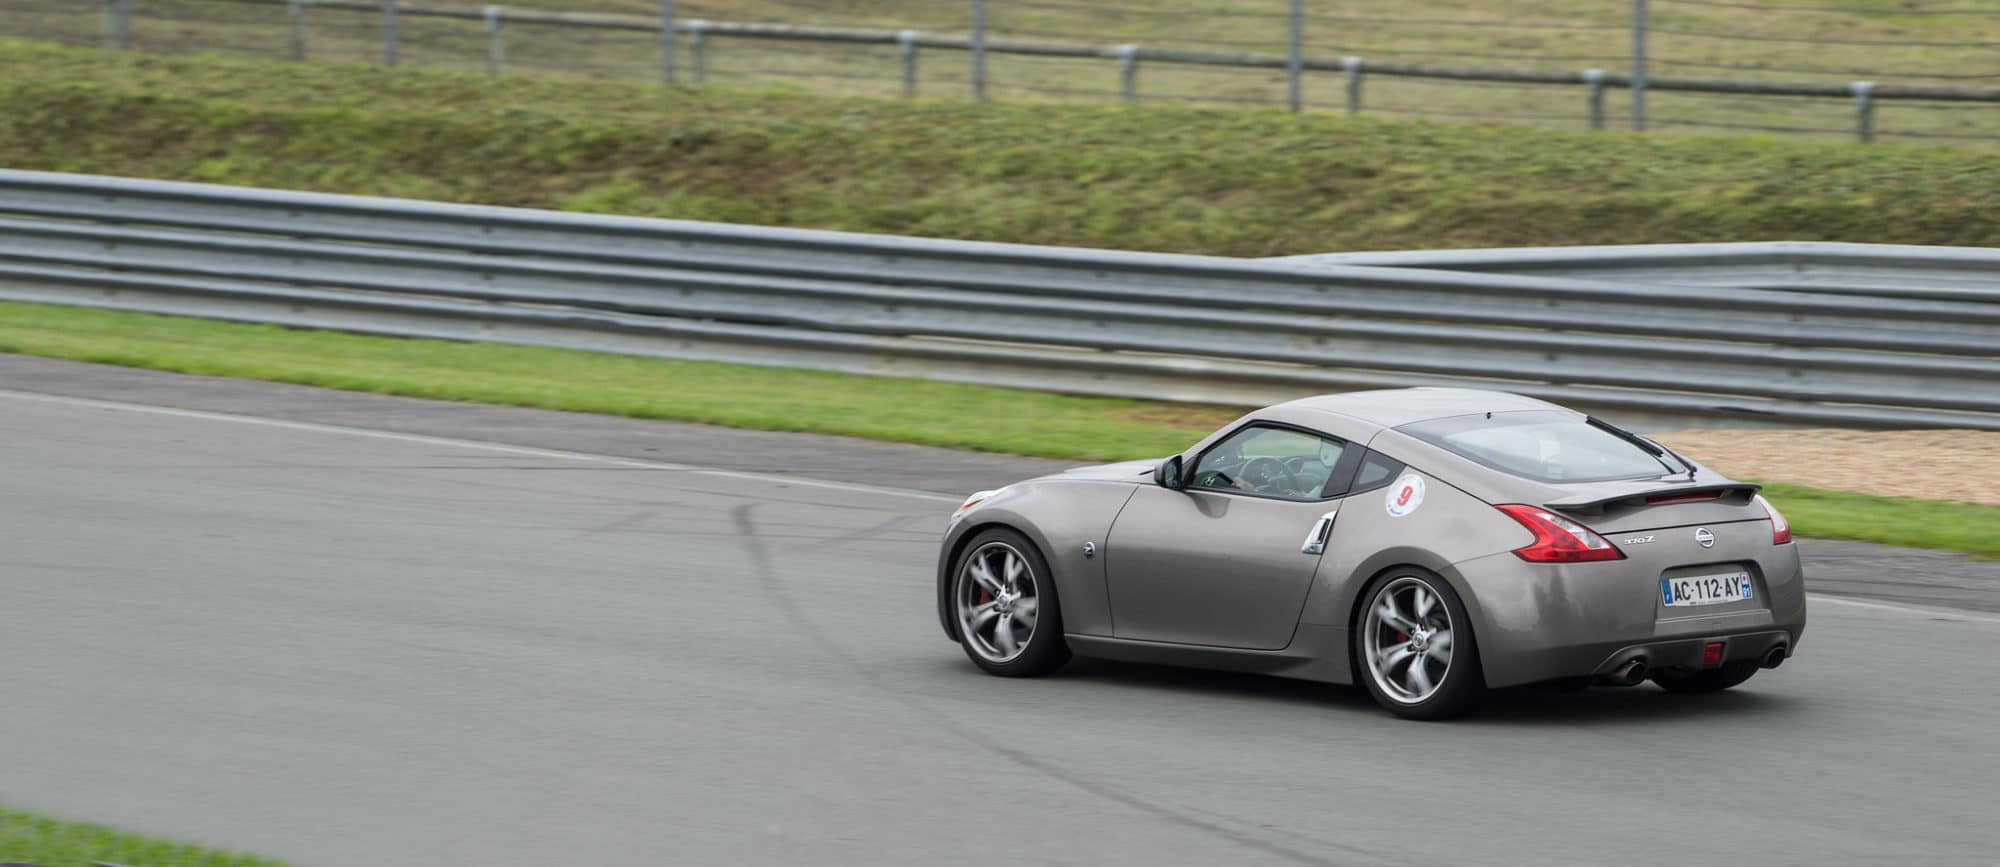 350z vs 370z Comparison: What Is the Difference?   Low Offset